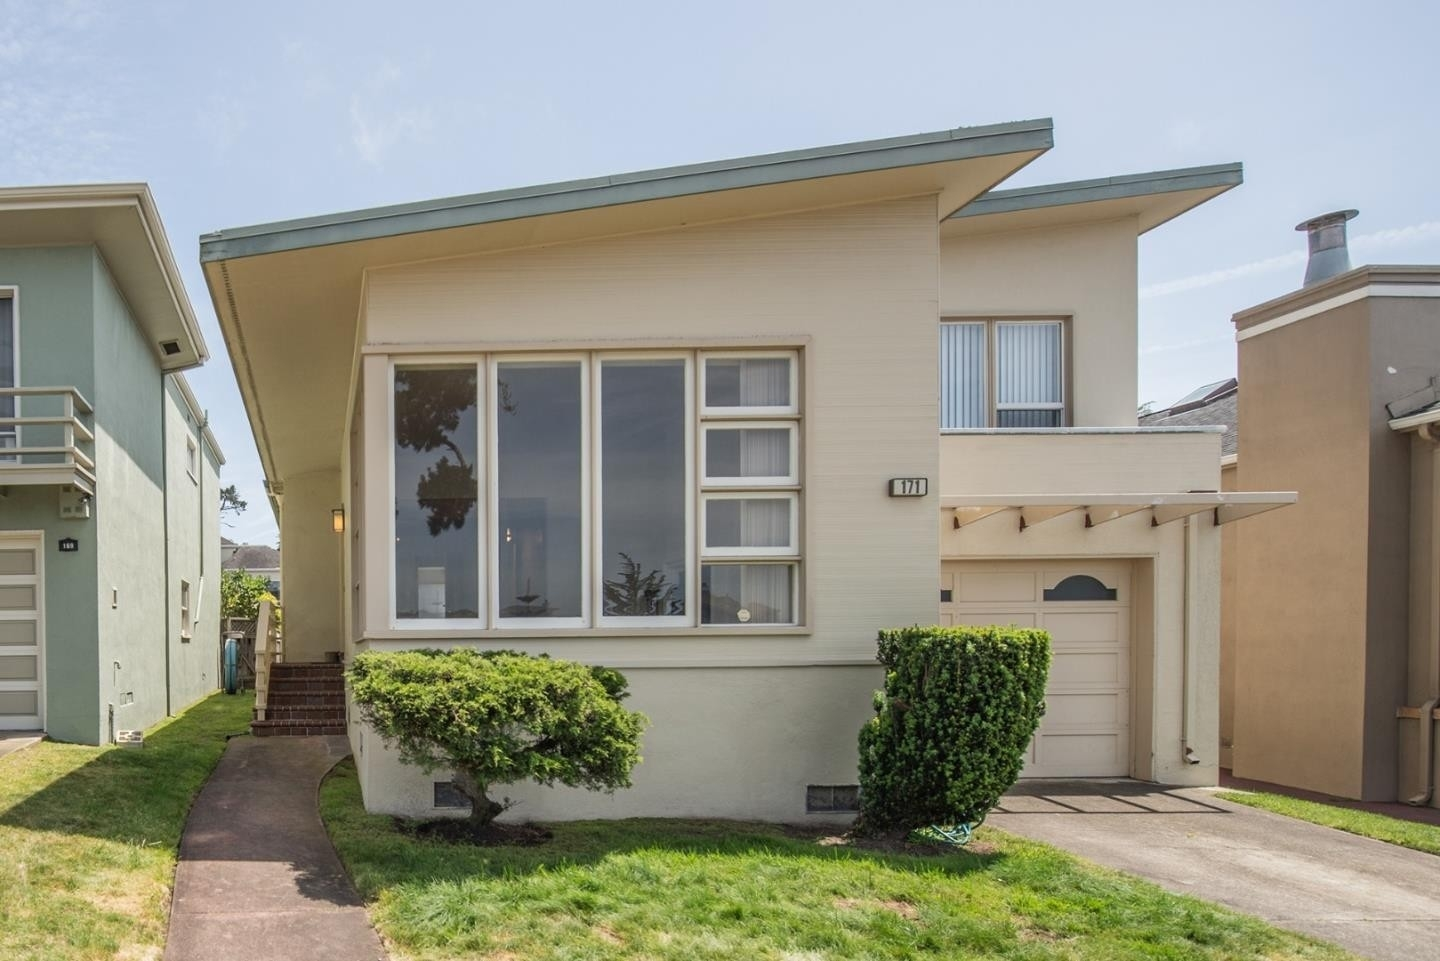 Rentals at Westlake, Daly City, CA 94015